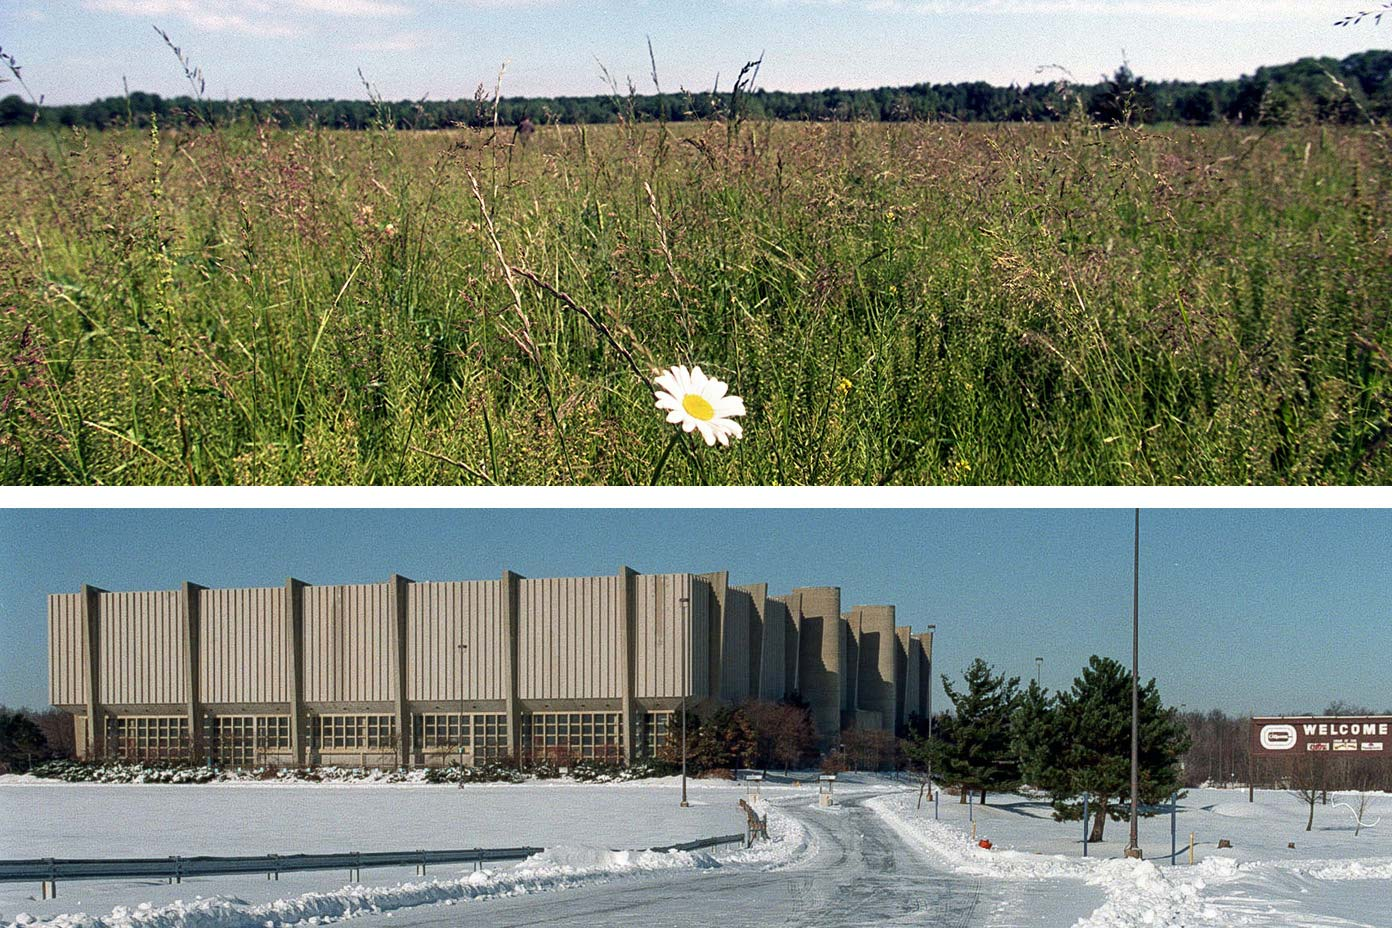 At top, a photo of the Coliseum at Richfield, in winter. At bottom, a photo of a field of tall grass (where the Coliseum once stood)